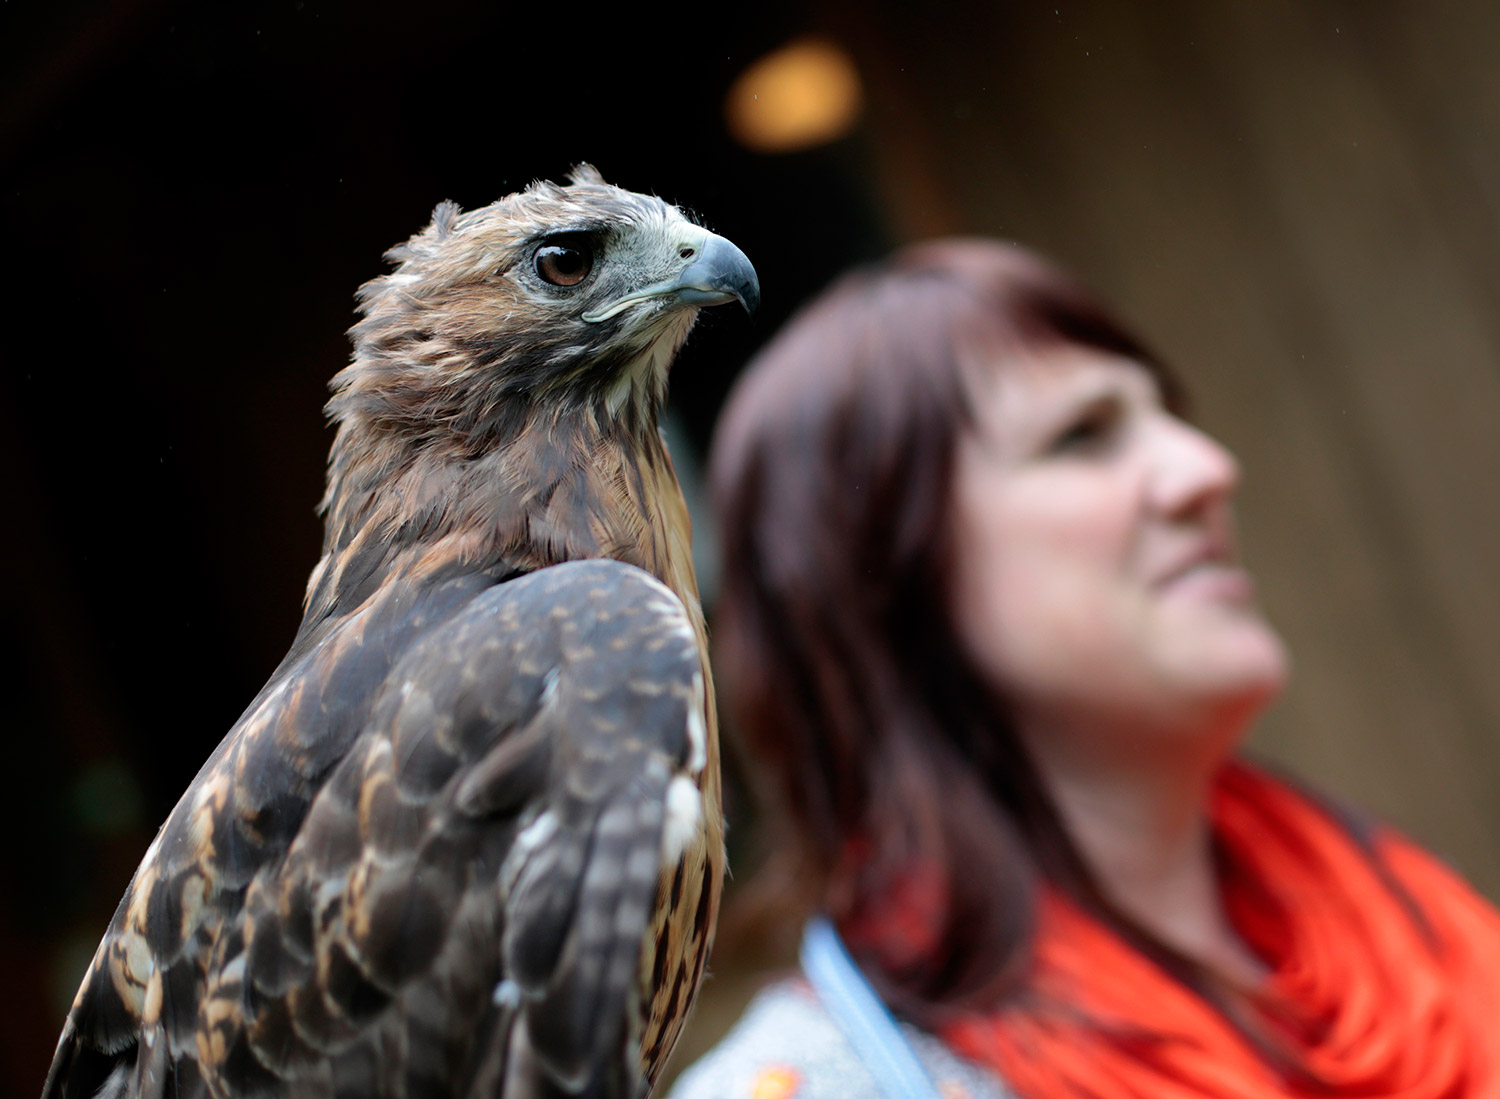 YORK, ME - SEPTEMBER 6: Executive Director Kristen Lamb holds Ruby, a red-tailed hawk, at Center for Wildlife in York. (Photo by Derek Davis/Staff Photographer)